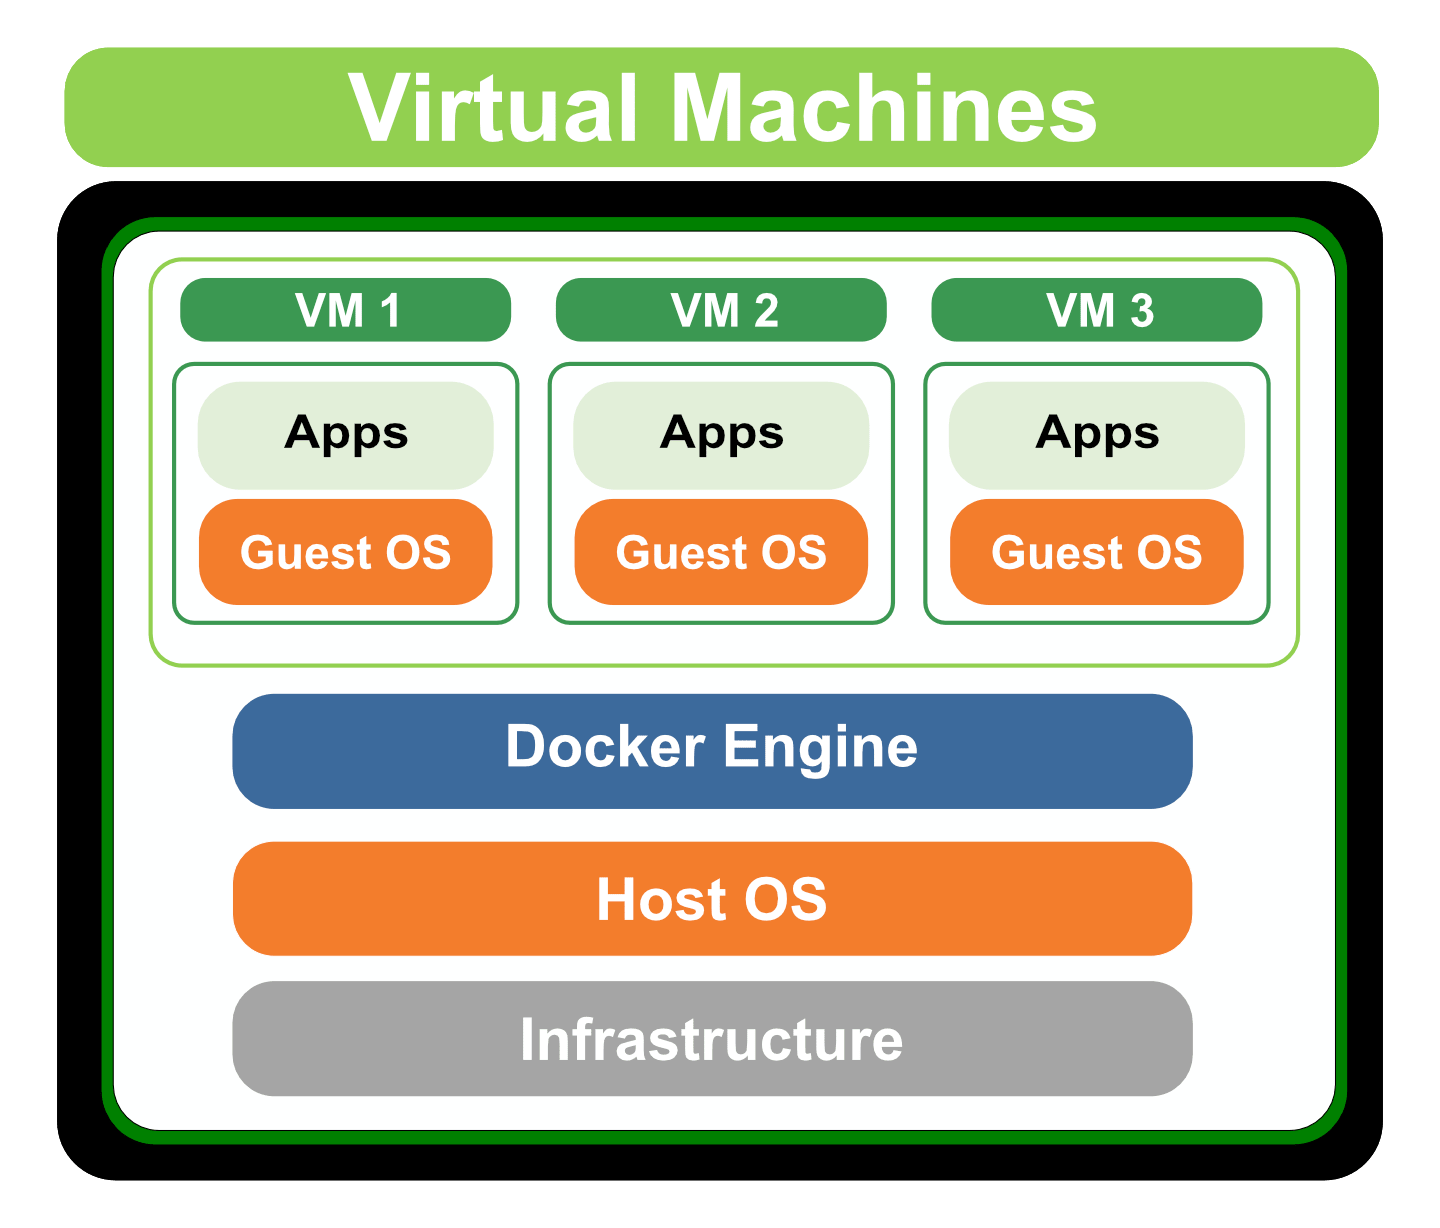 Containers vs Virtual Machines : What are the differences